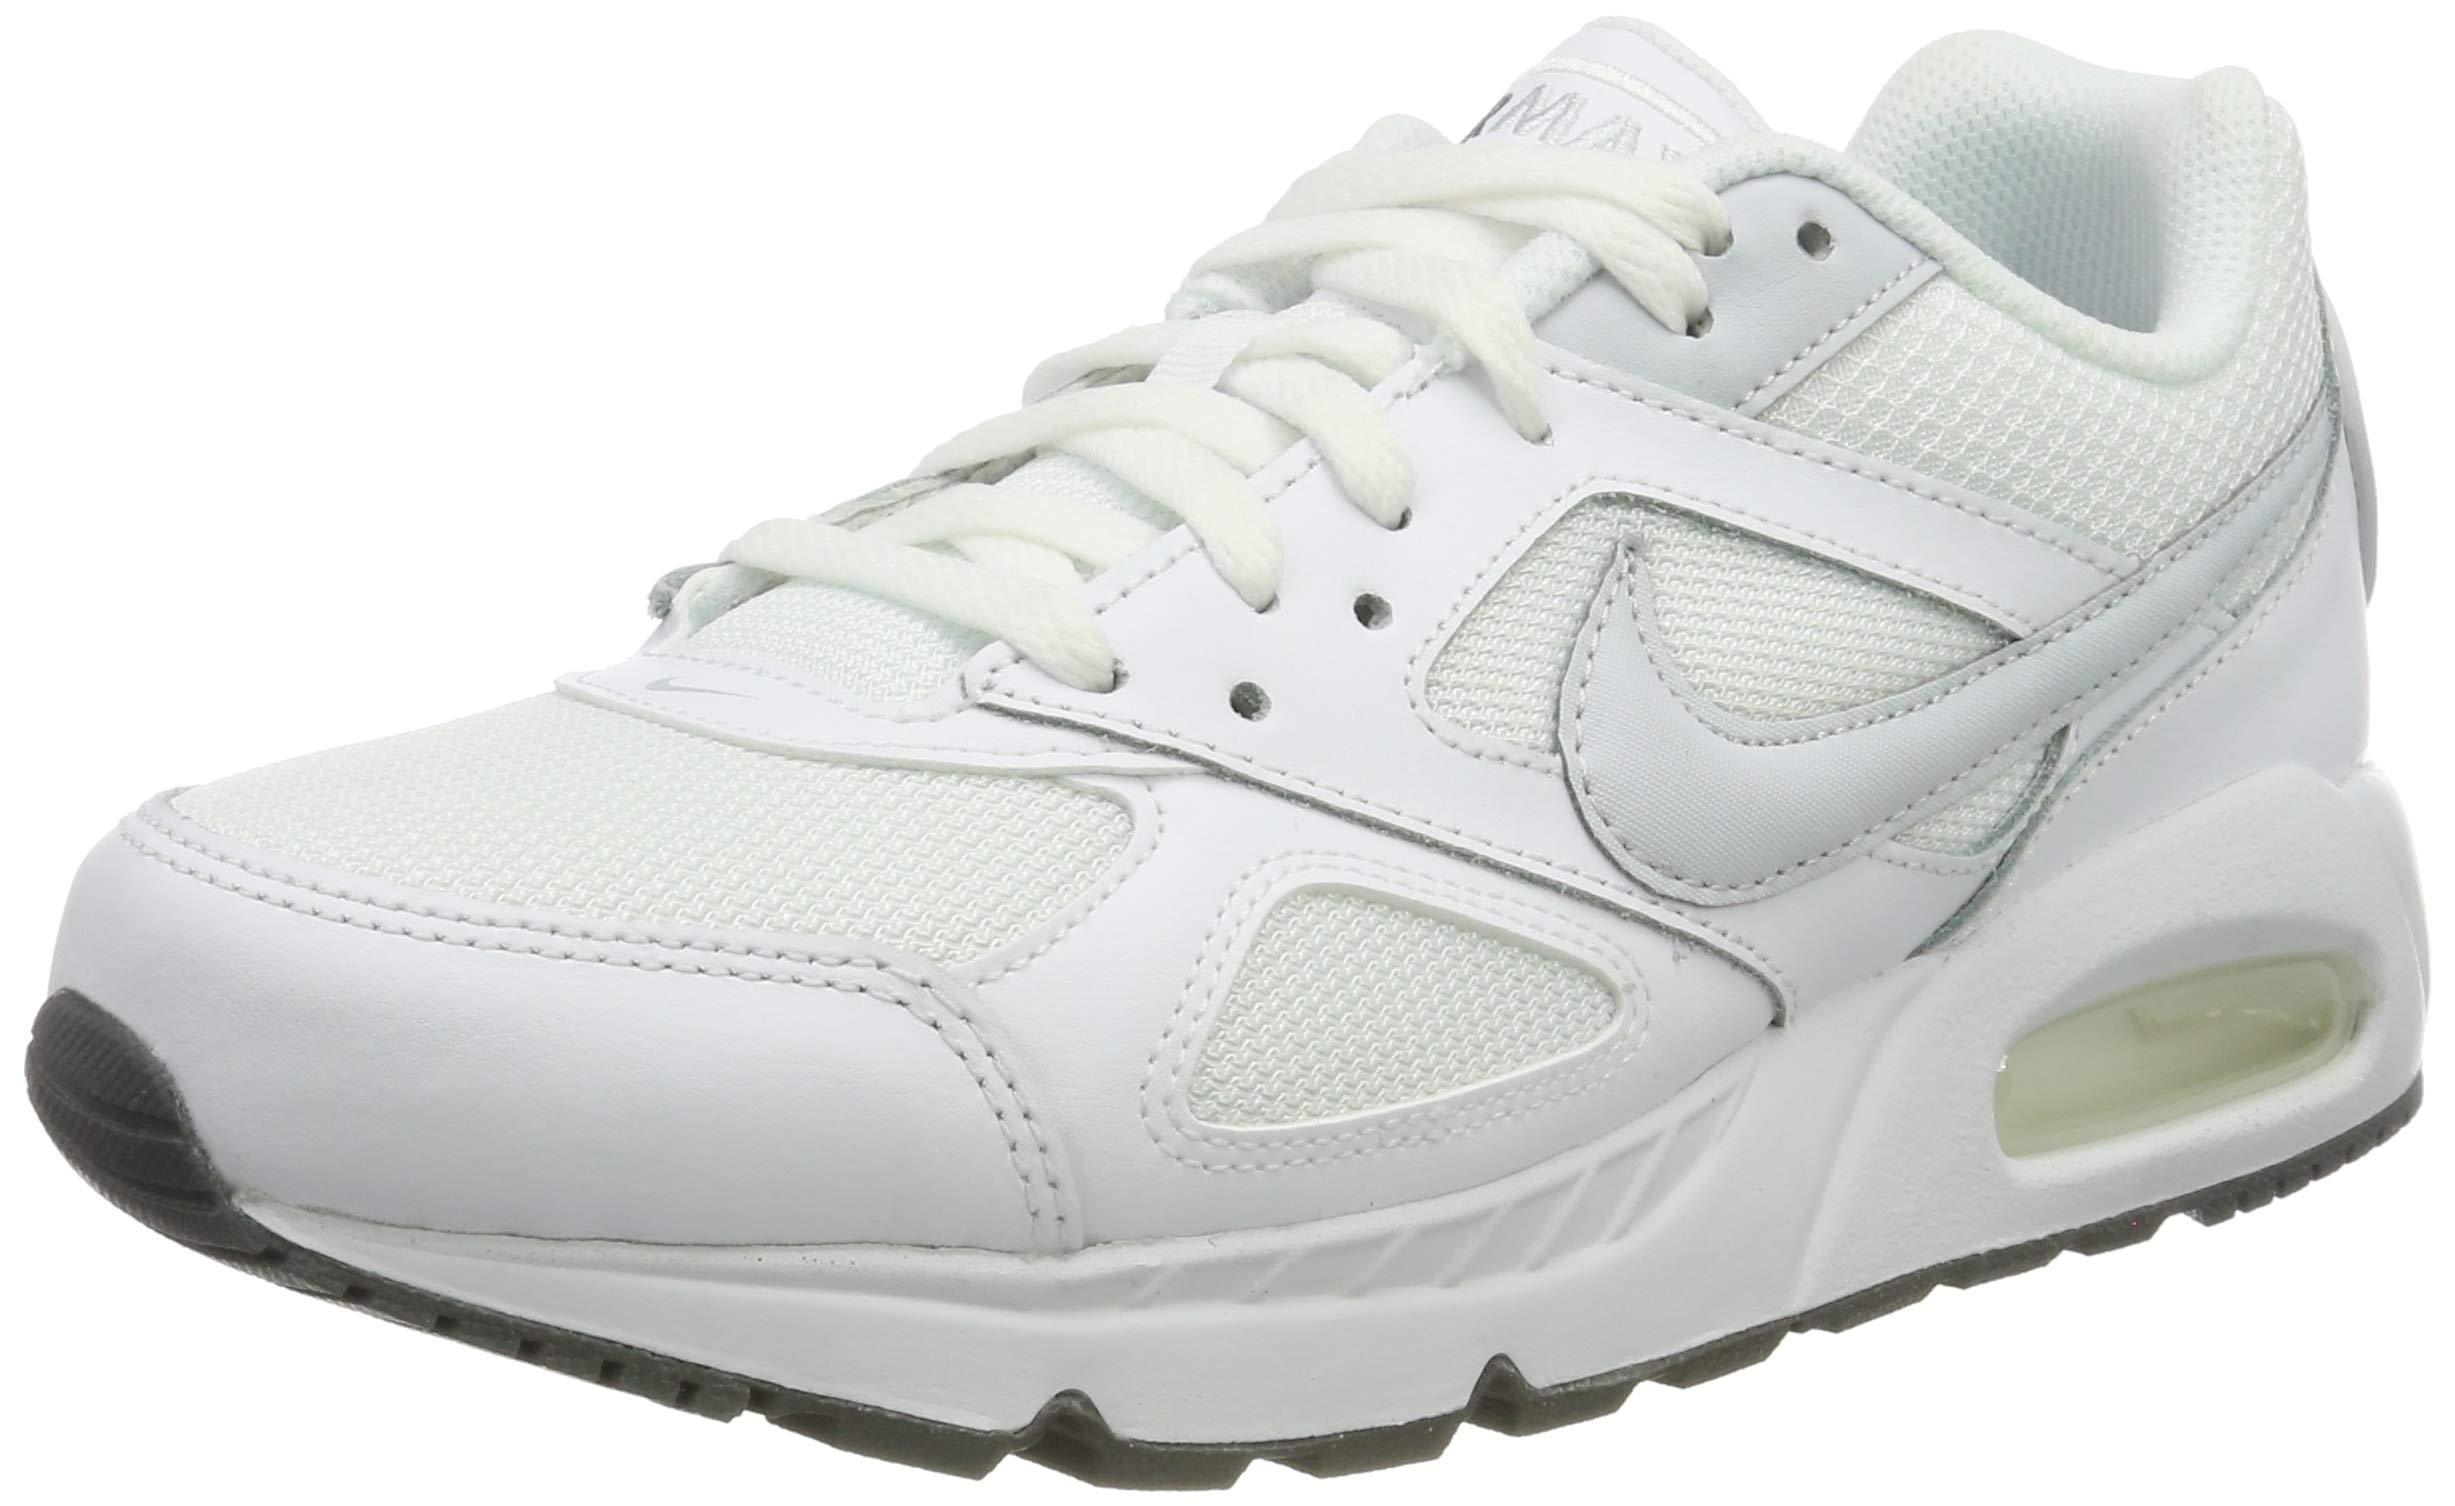 f61dbde56 Galleon - Nike Womens Air Max Ivo Running Trainers 580519 Sneakers Shoes  (UK 5.5 US 8 EU 39